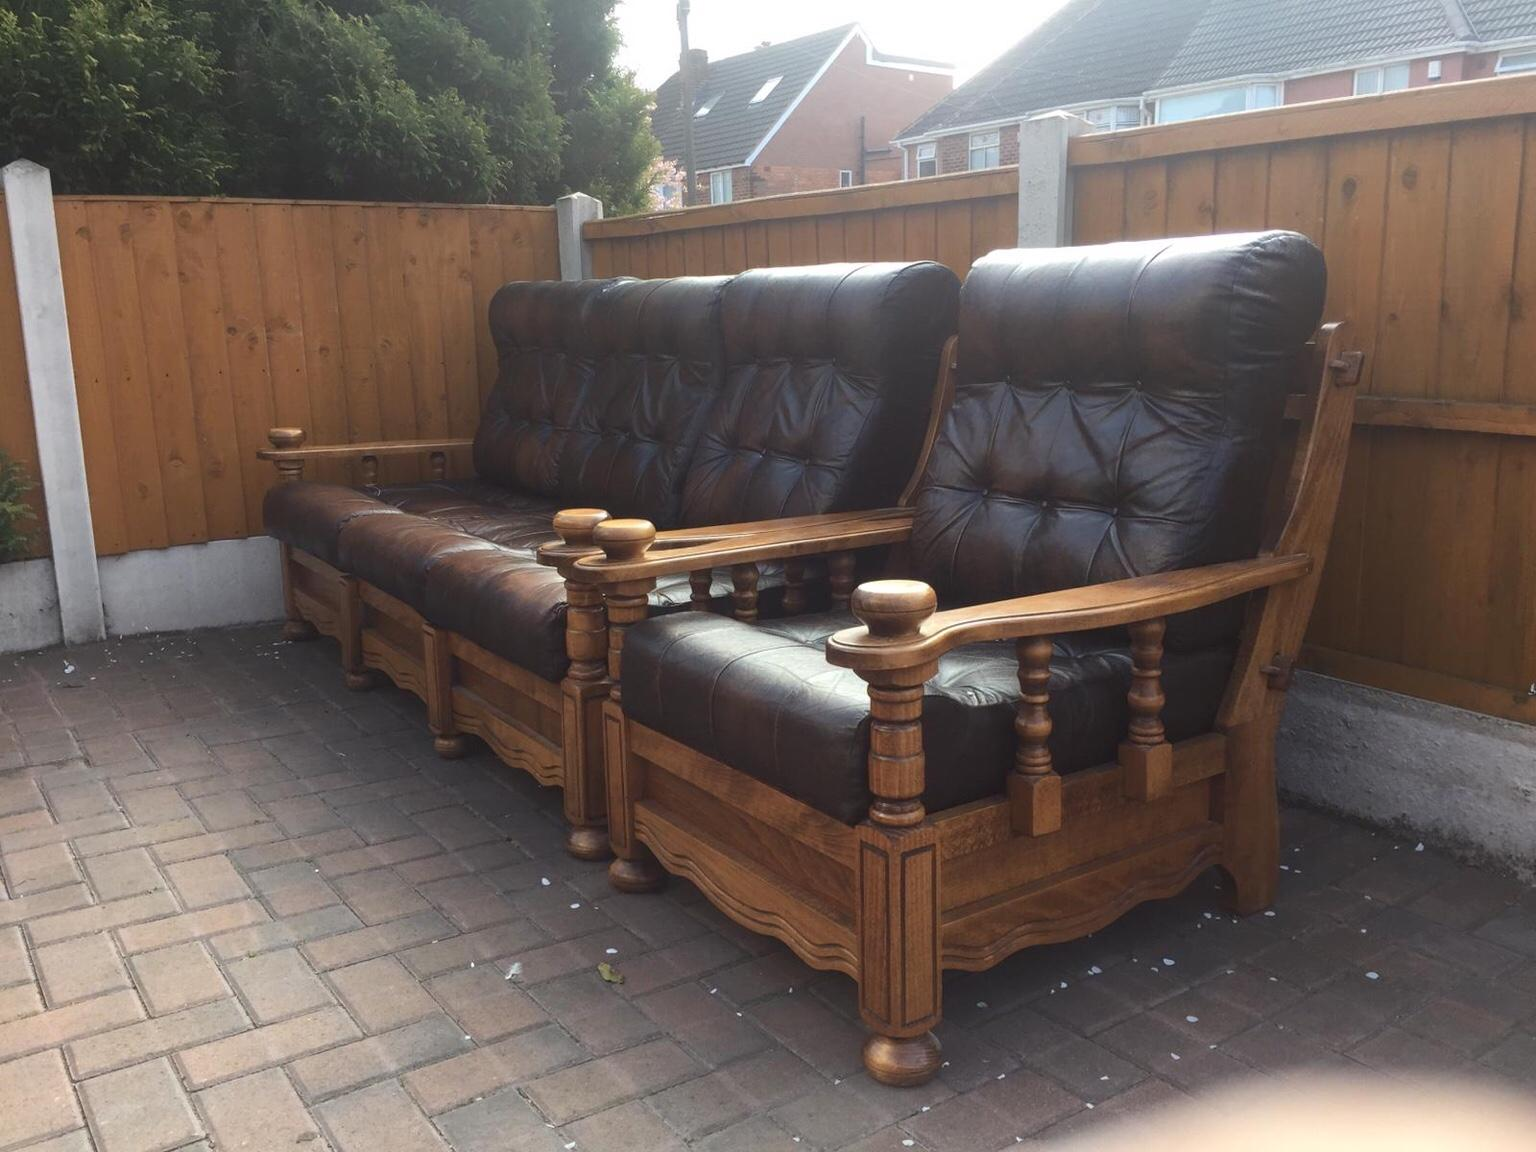 Chesterfield Sofas Vintage Sofa Arm Chair In Walsall For 120 00